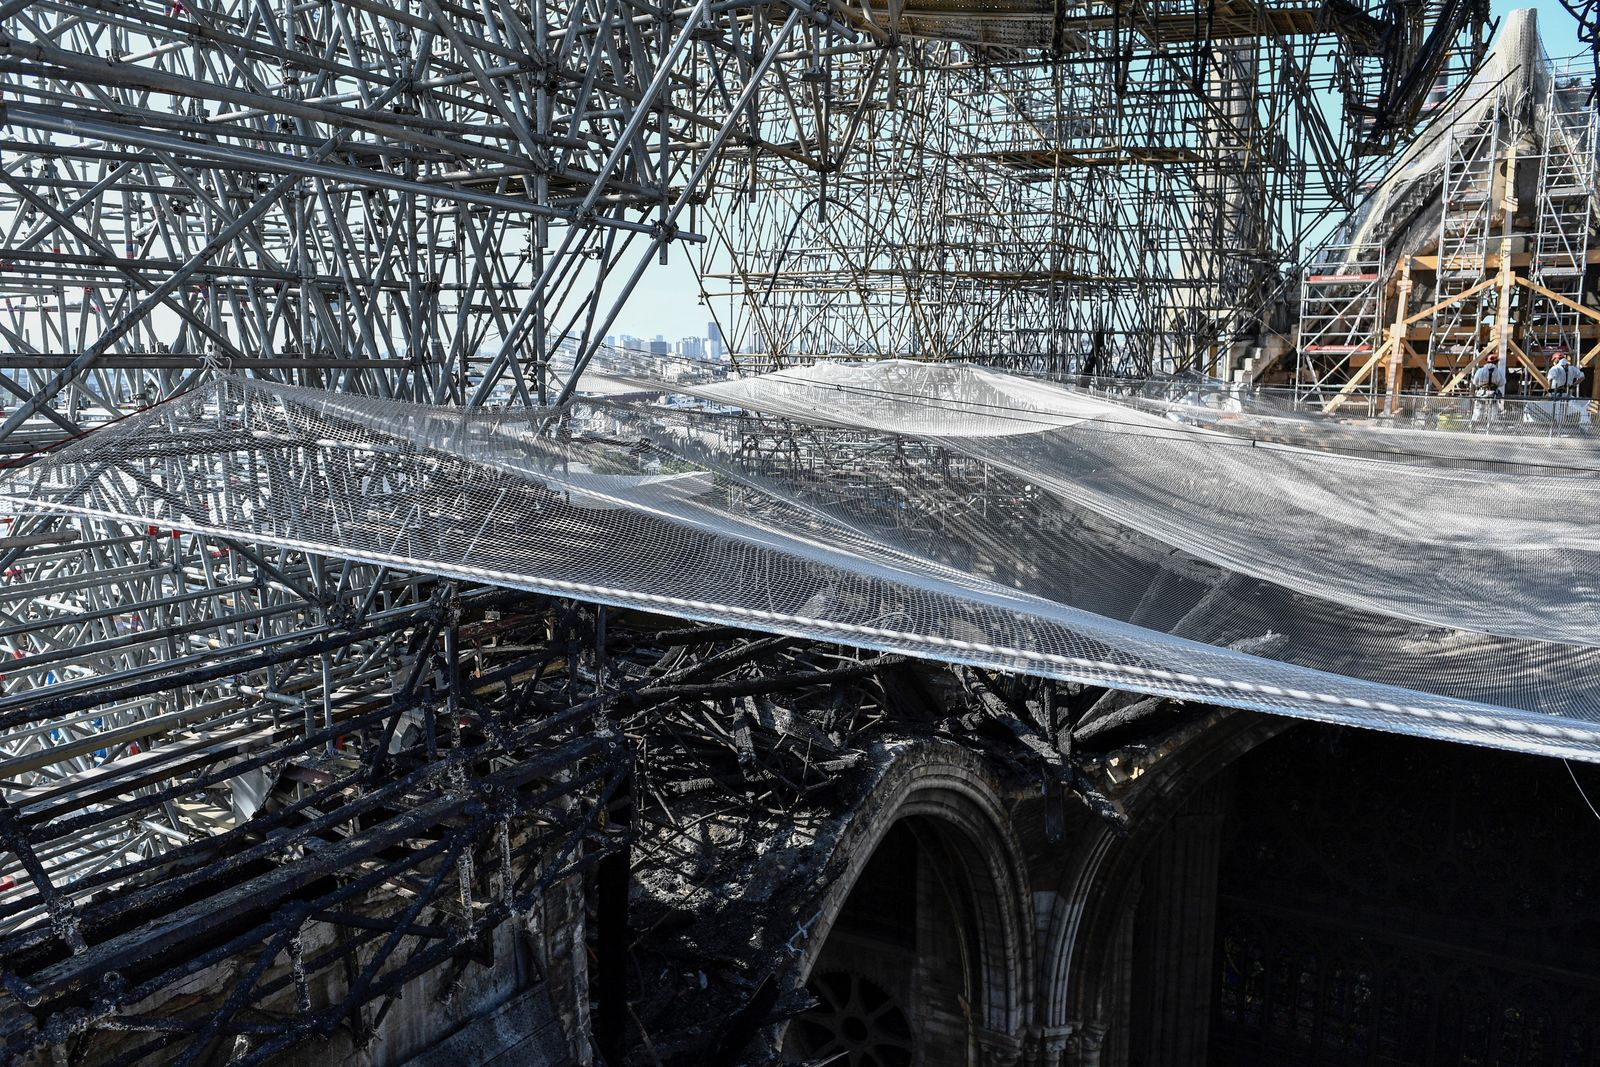 Parts of a destroyed ribbed vault and scaffolding are pictured at the Notre-Dame de Paris Cathedral, Wednesday, July 17, 2019 in Paris. . (Stephane de Sakutin/Pool via AP)